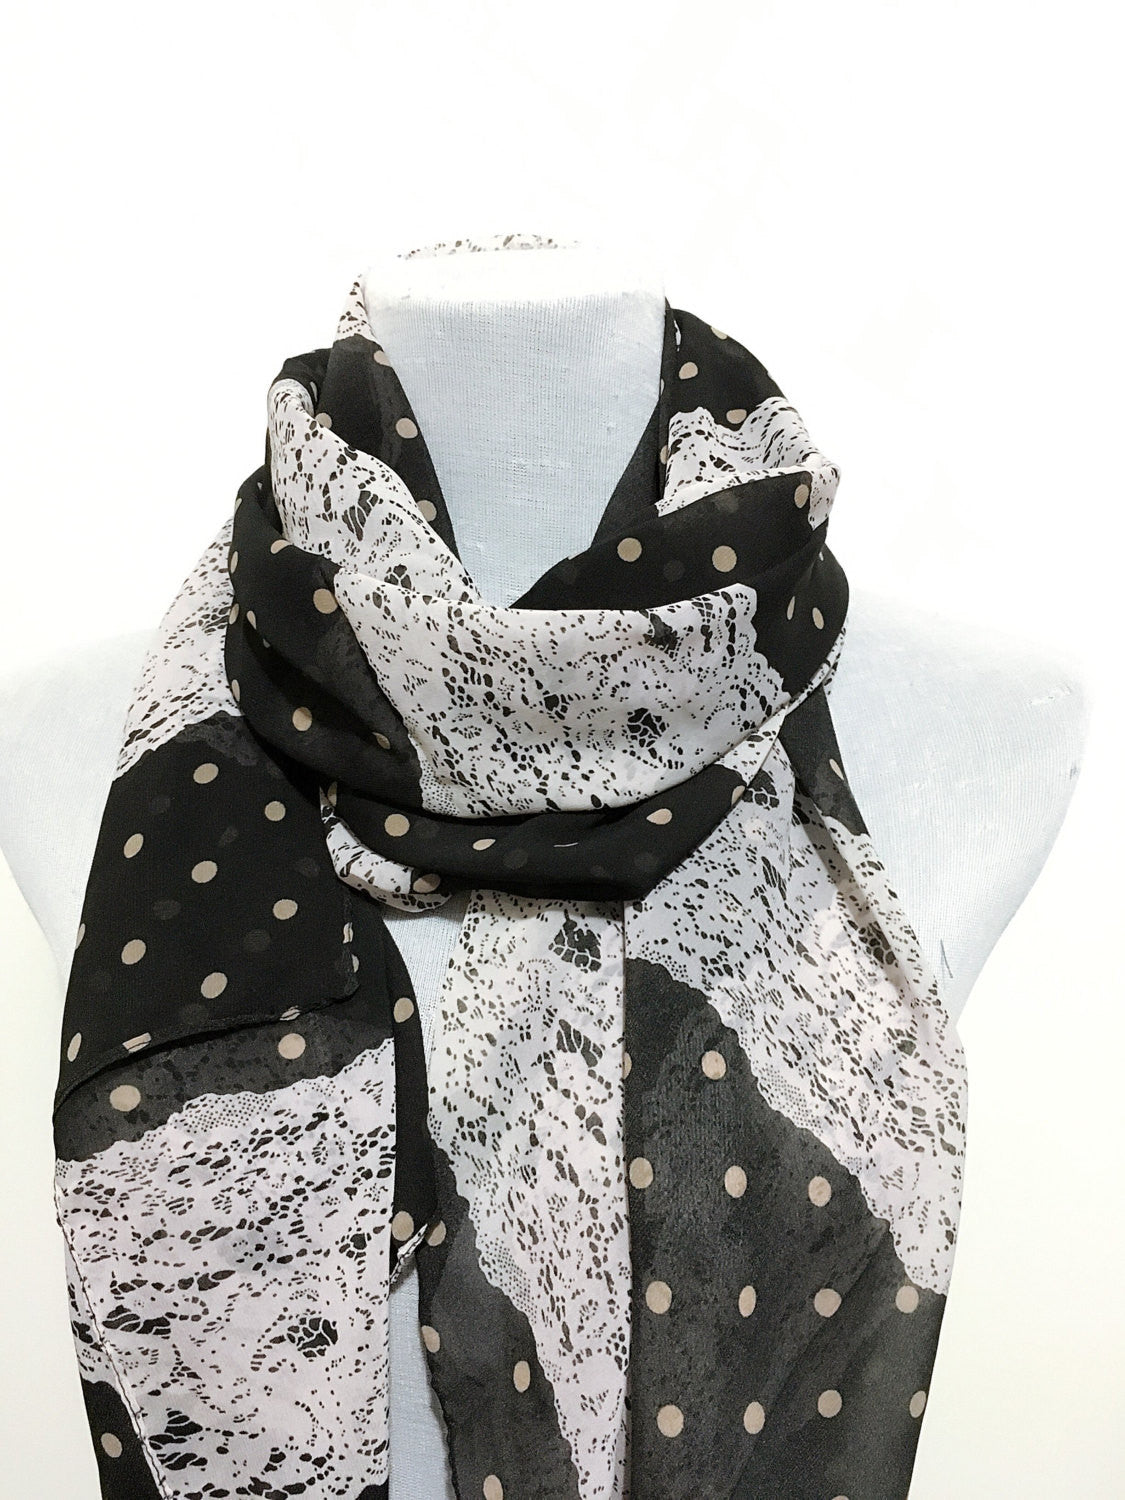 Black Polka Dot and Lace Scarf - Bean Concept - Etsy